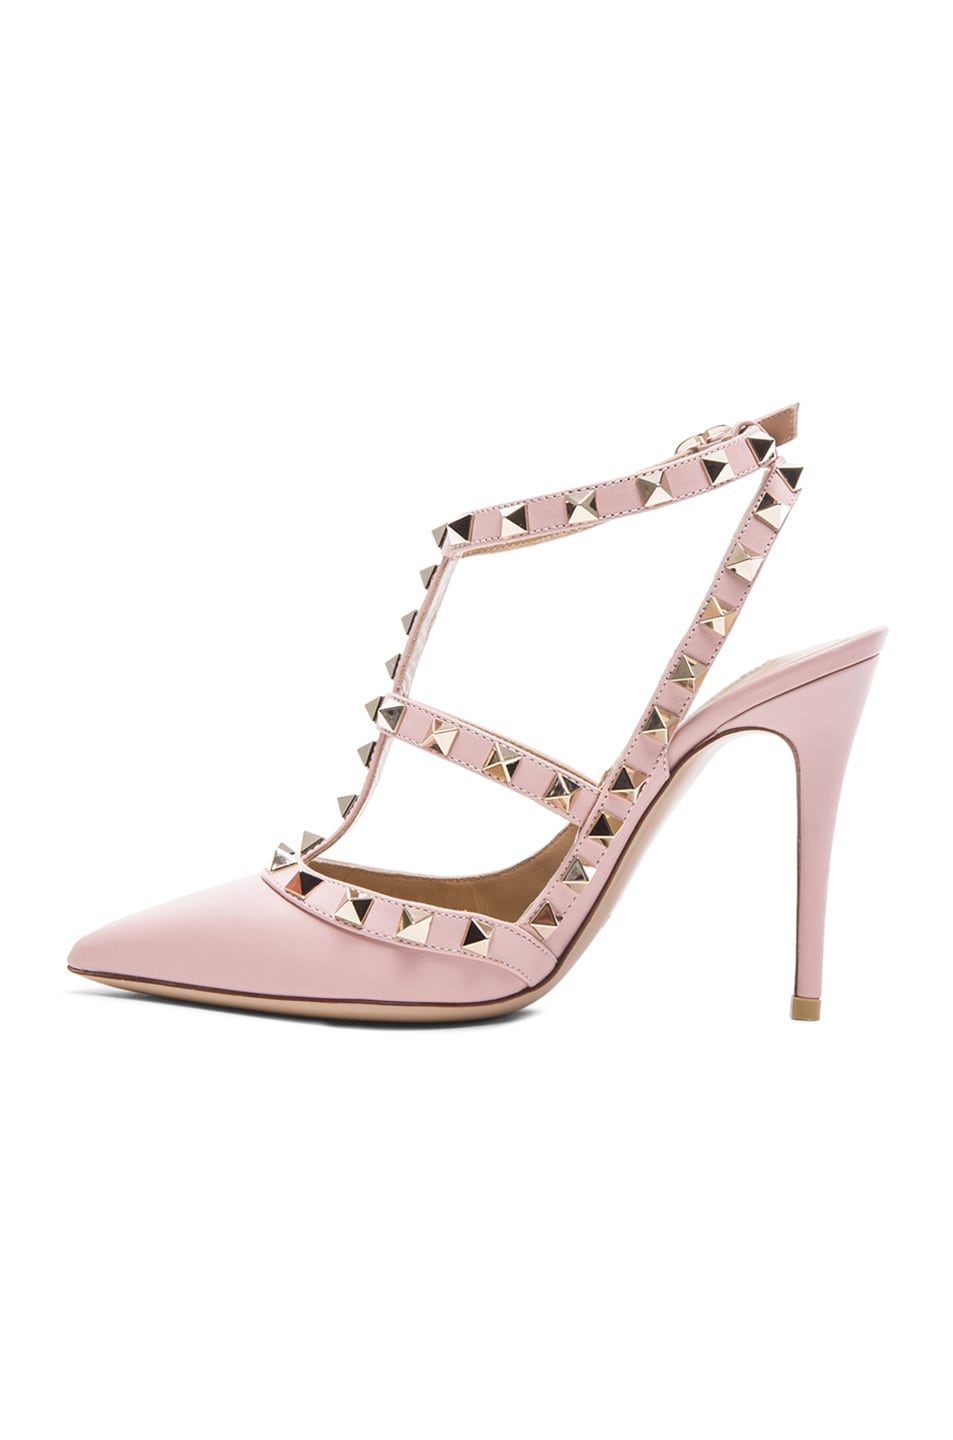 Image 5 of Valentino Rockstud Leather Slingbacks T.100 in Water Rose